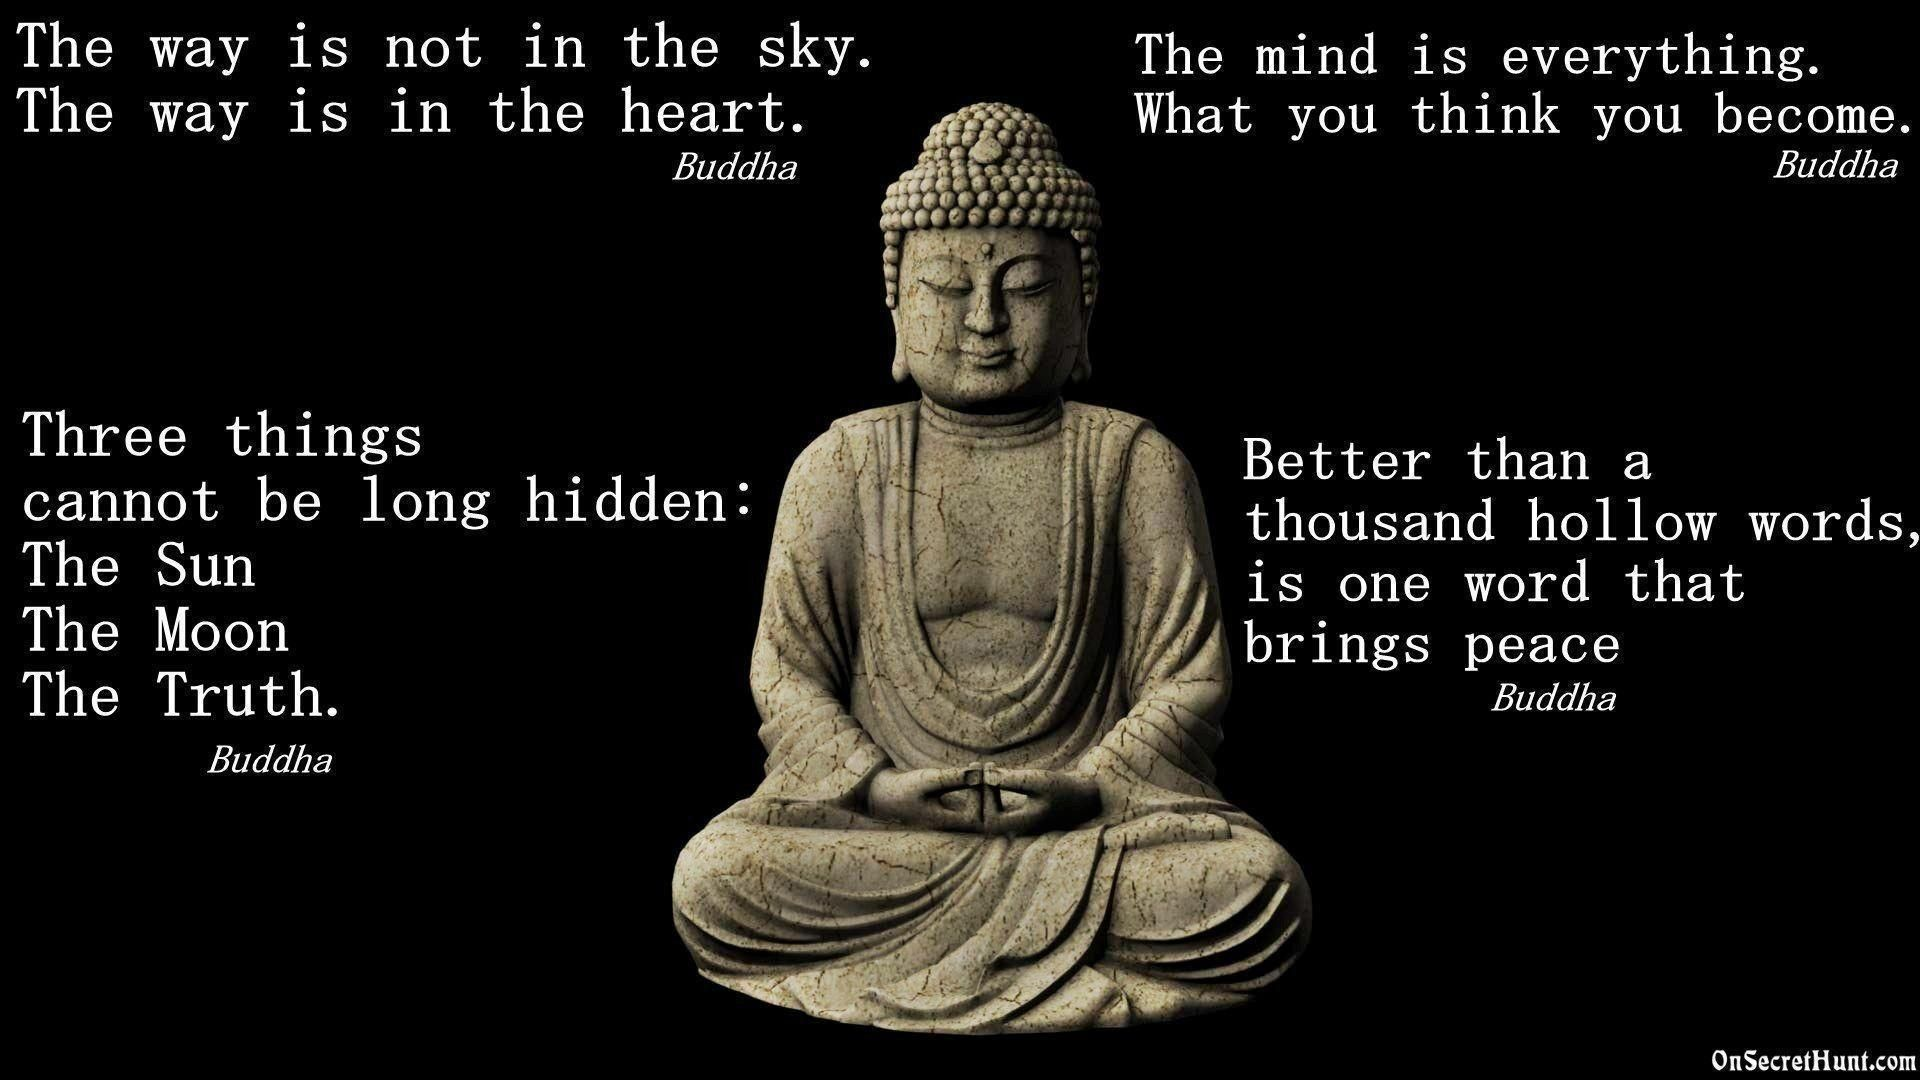 Buddha Quotes Buddha Quotes Wallpapers Wallpaper Cave Buddha Quote Buddha Buddhism Quote